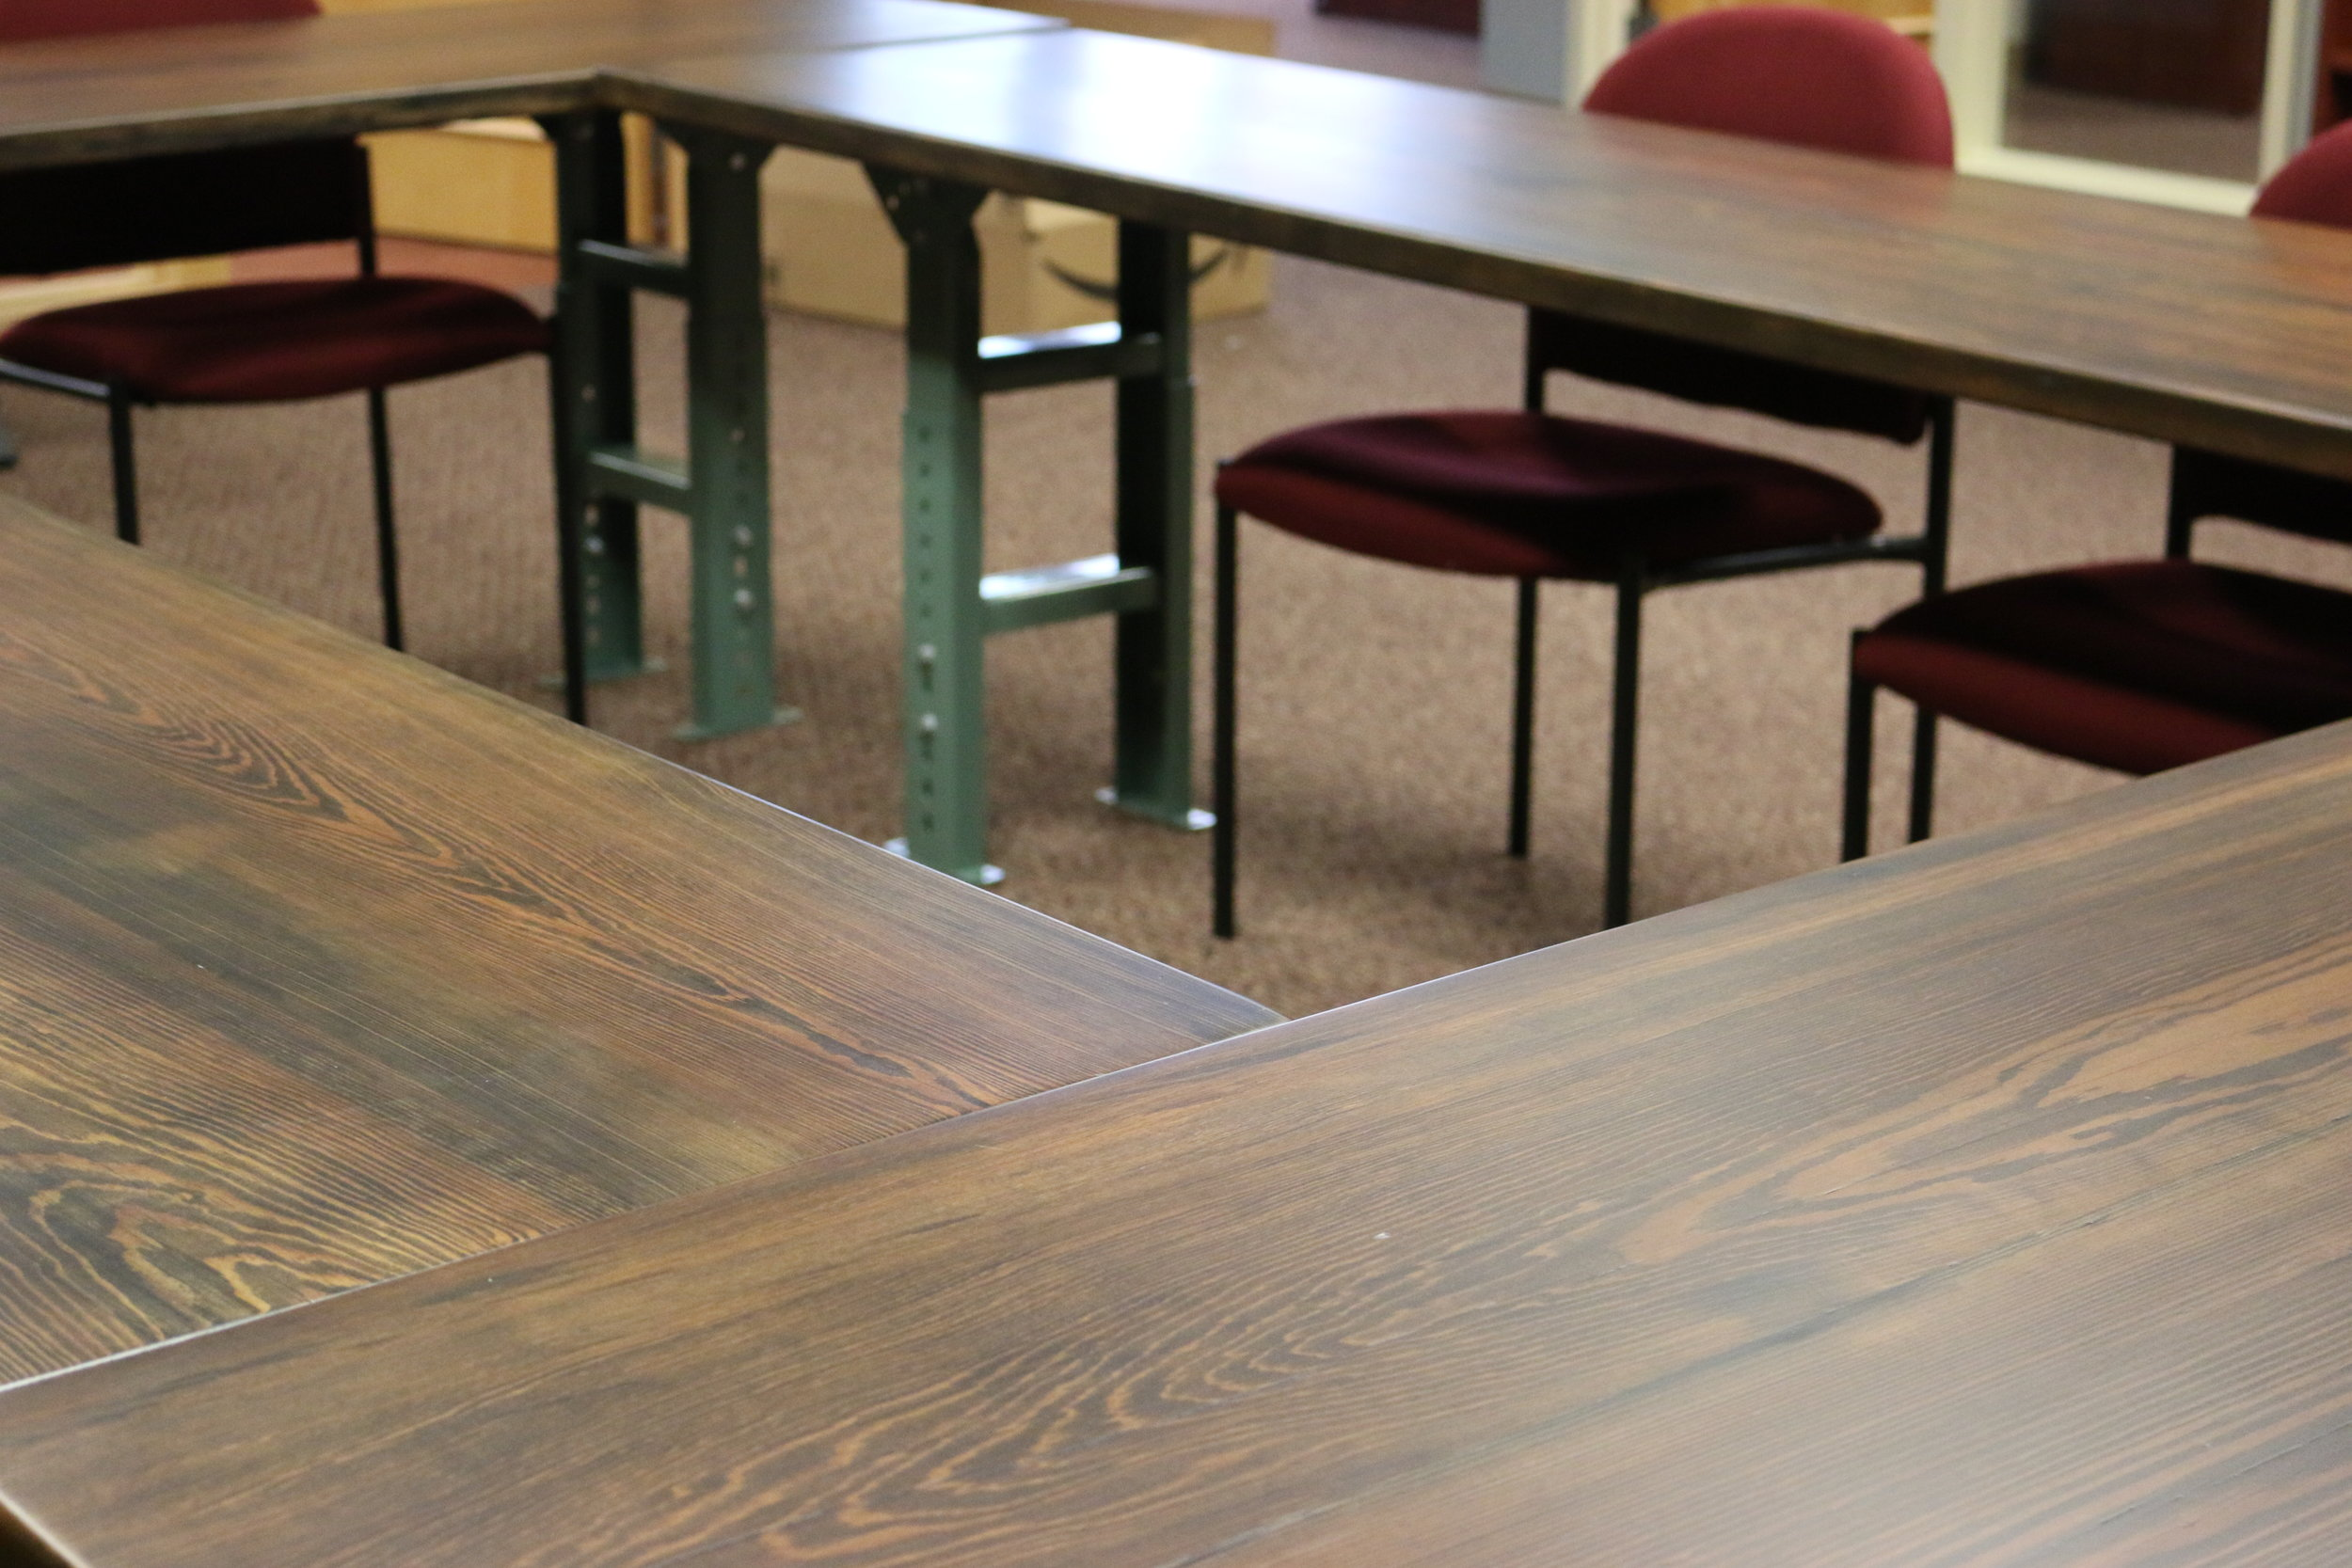 Sangamon Reclaimed Illinois Environmental Council Reclaimed wood conference tables Springfield Illinois.JPG